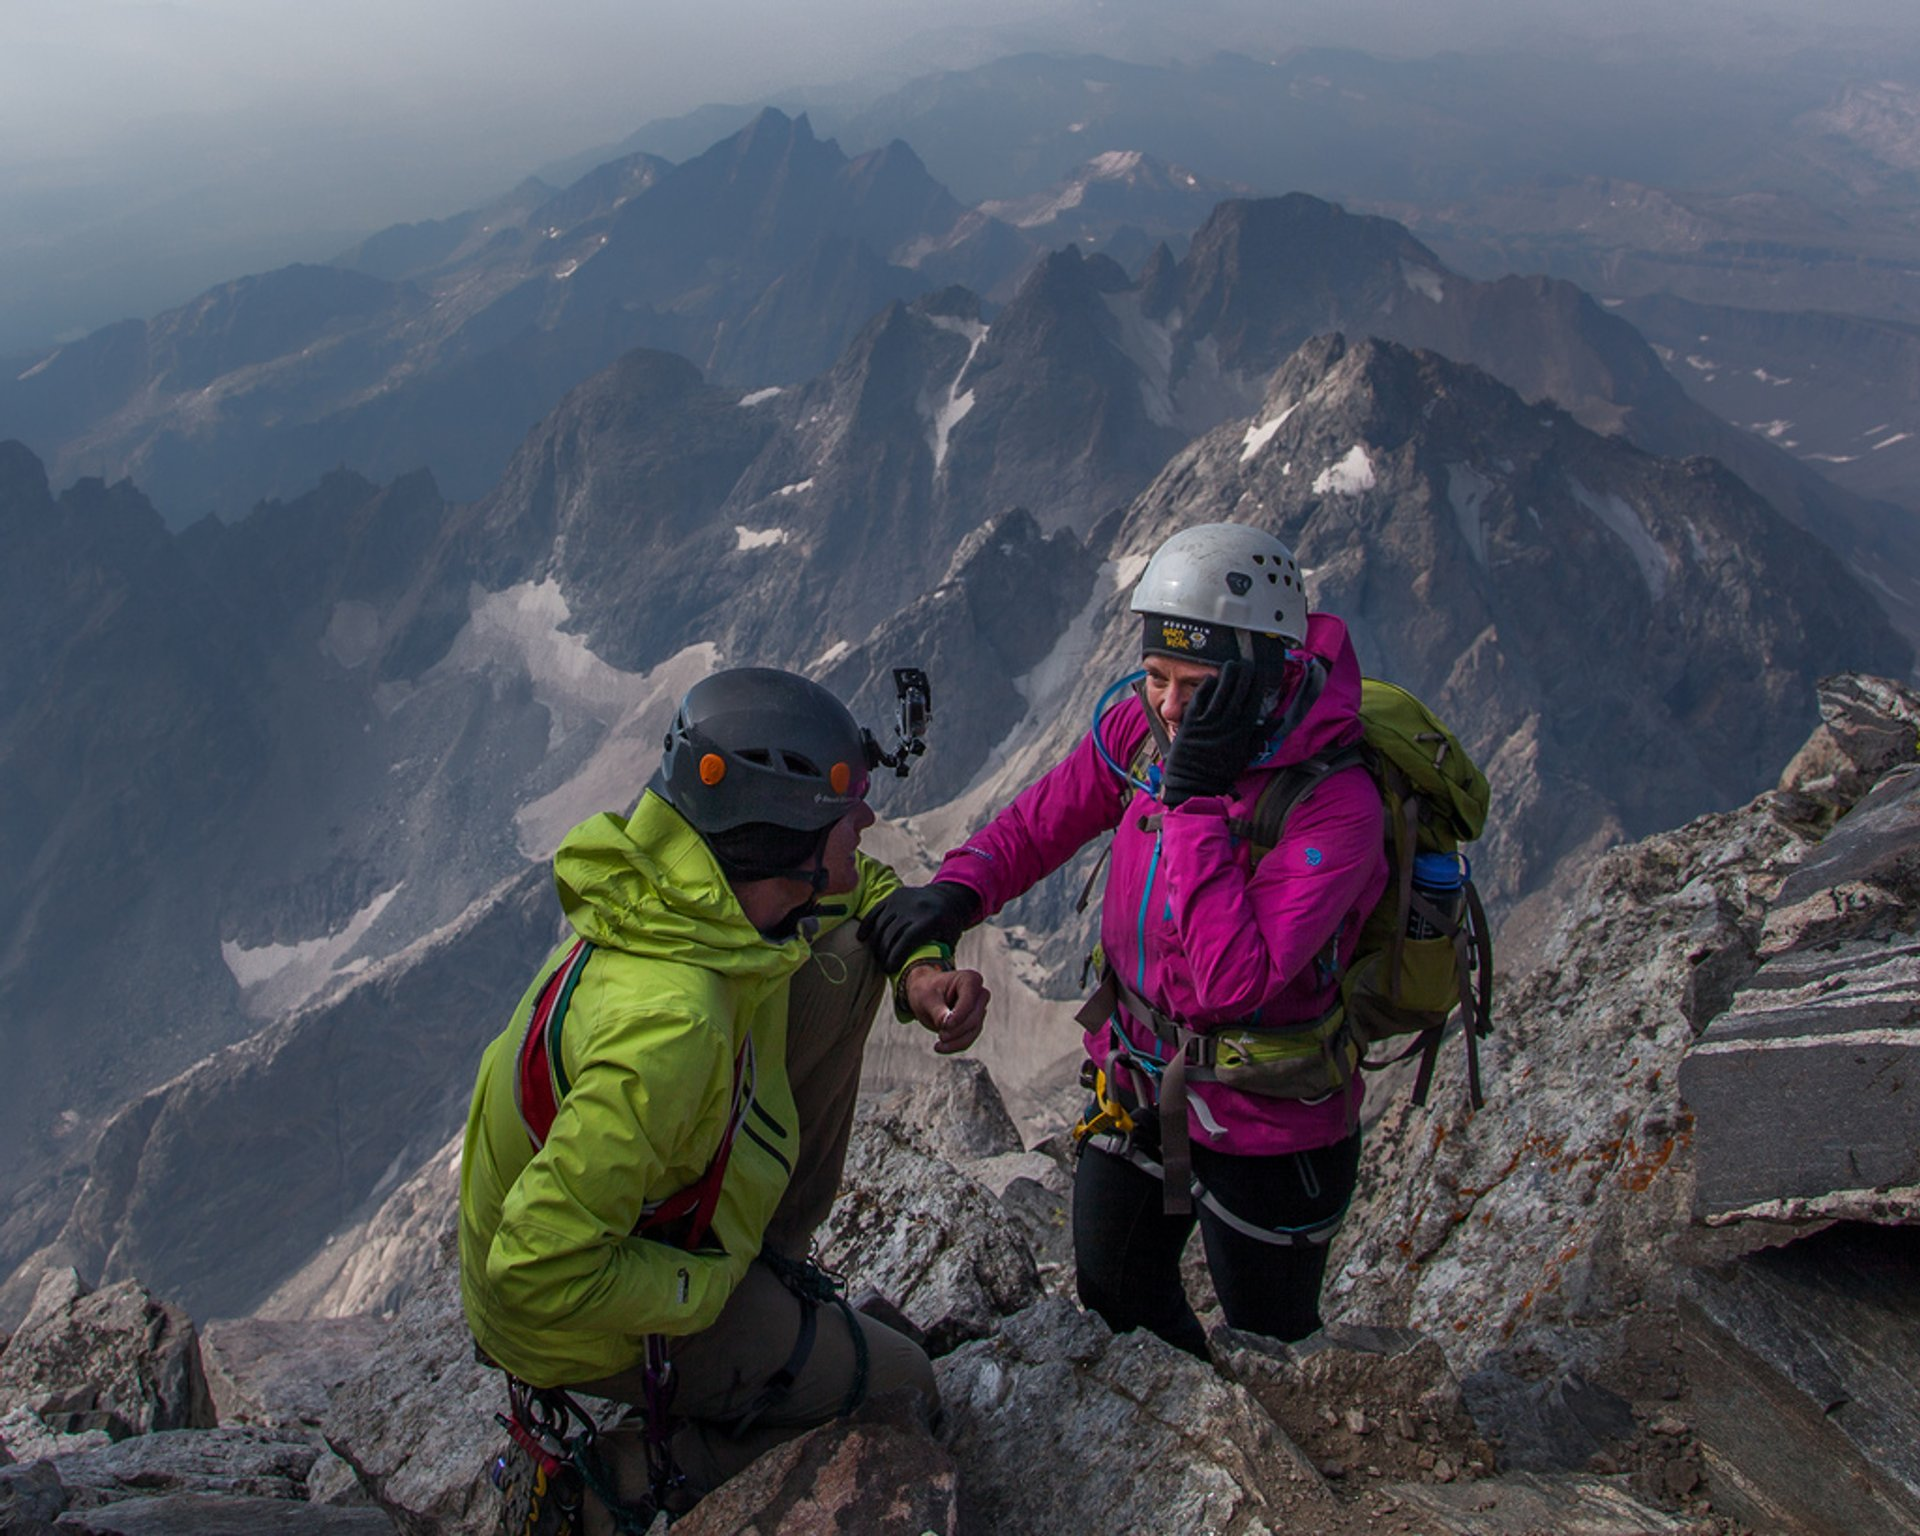 This is on top of the Grand Teton in Wyoming 2020